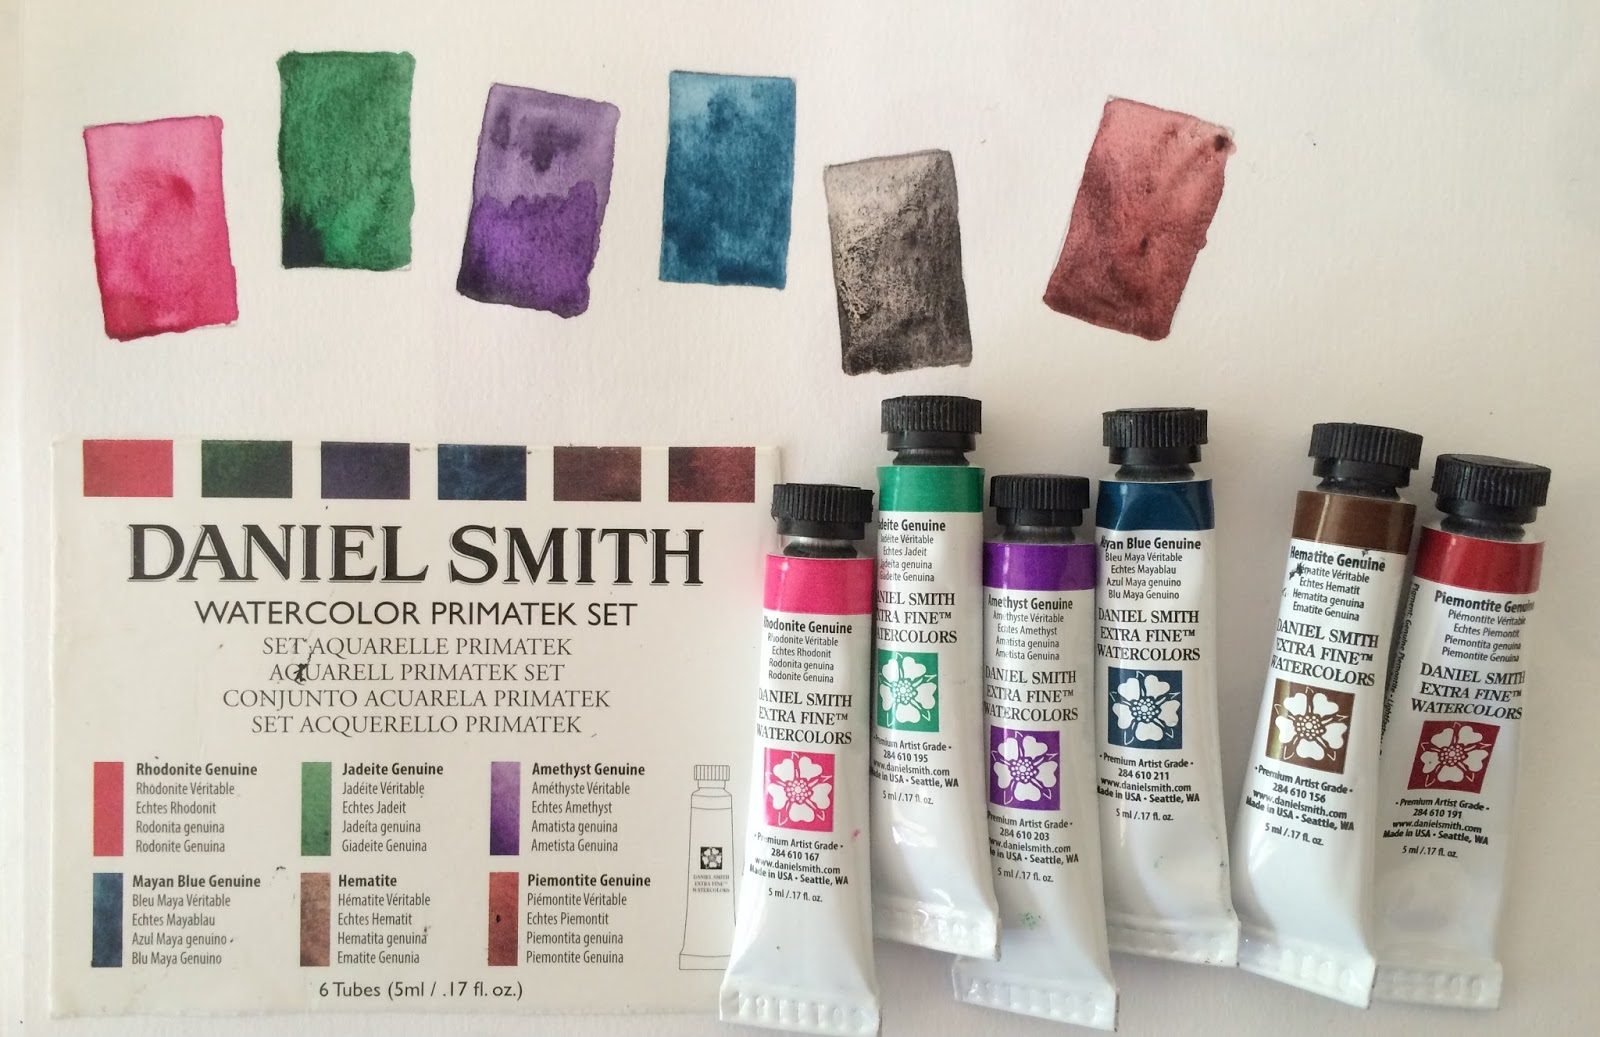 jane blundell artist daniel smith essentials a great set to get